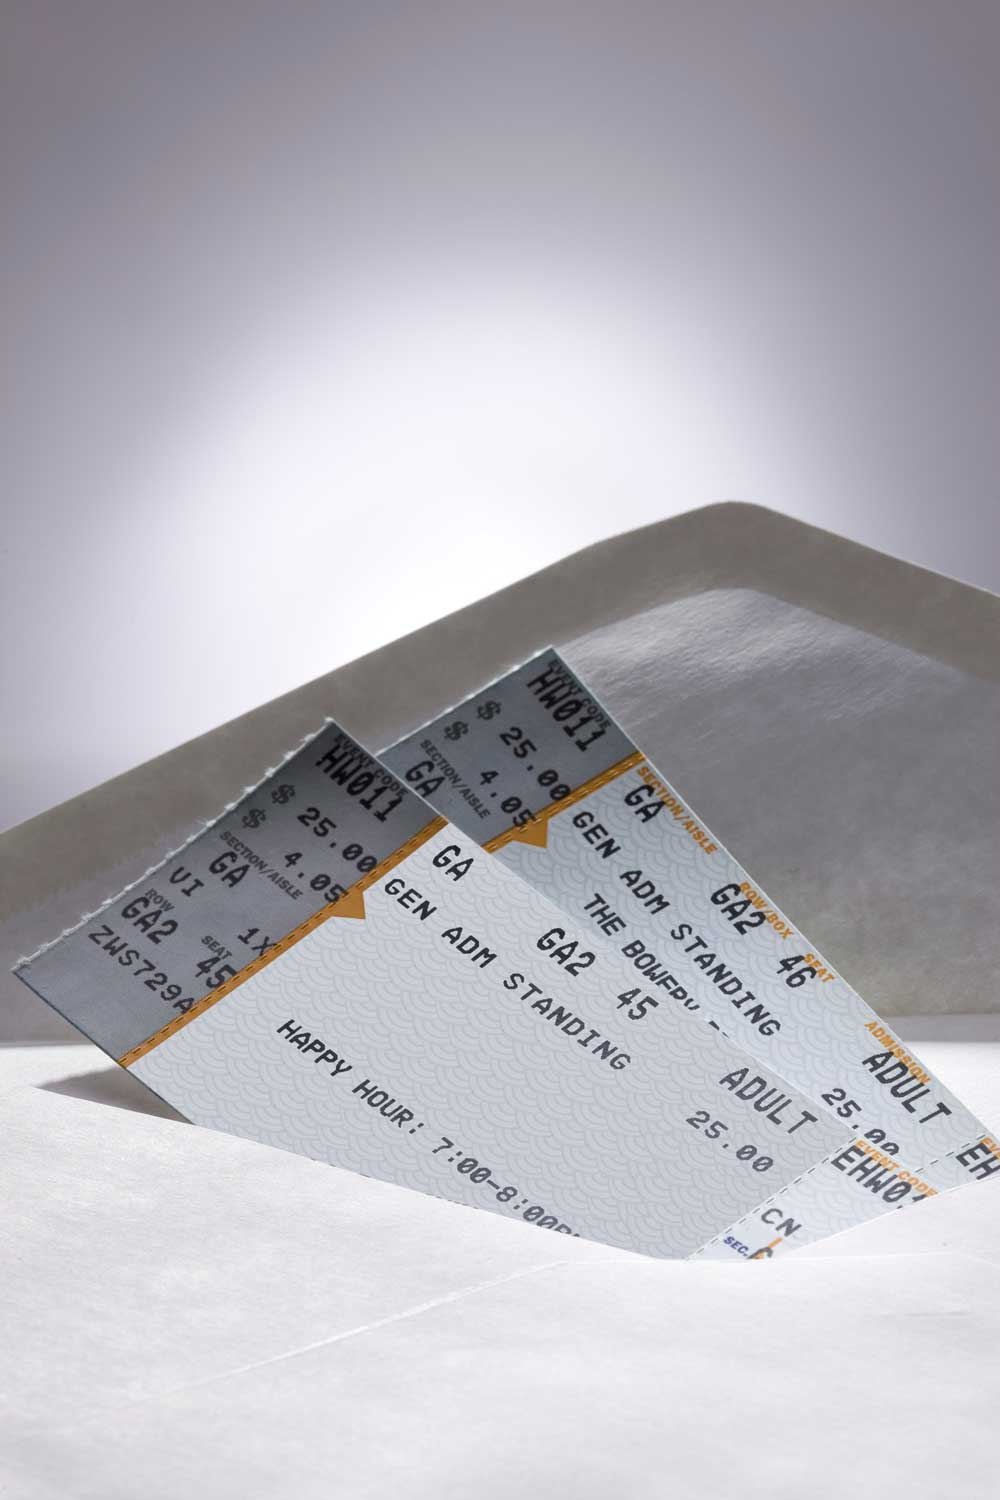 Concert tickets in envelope